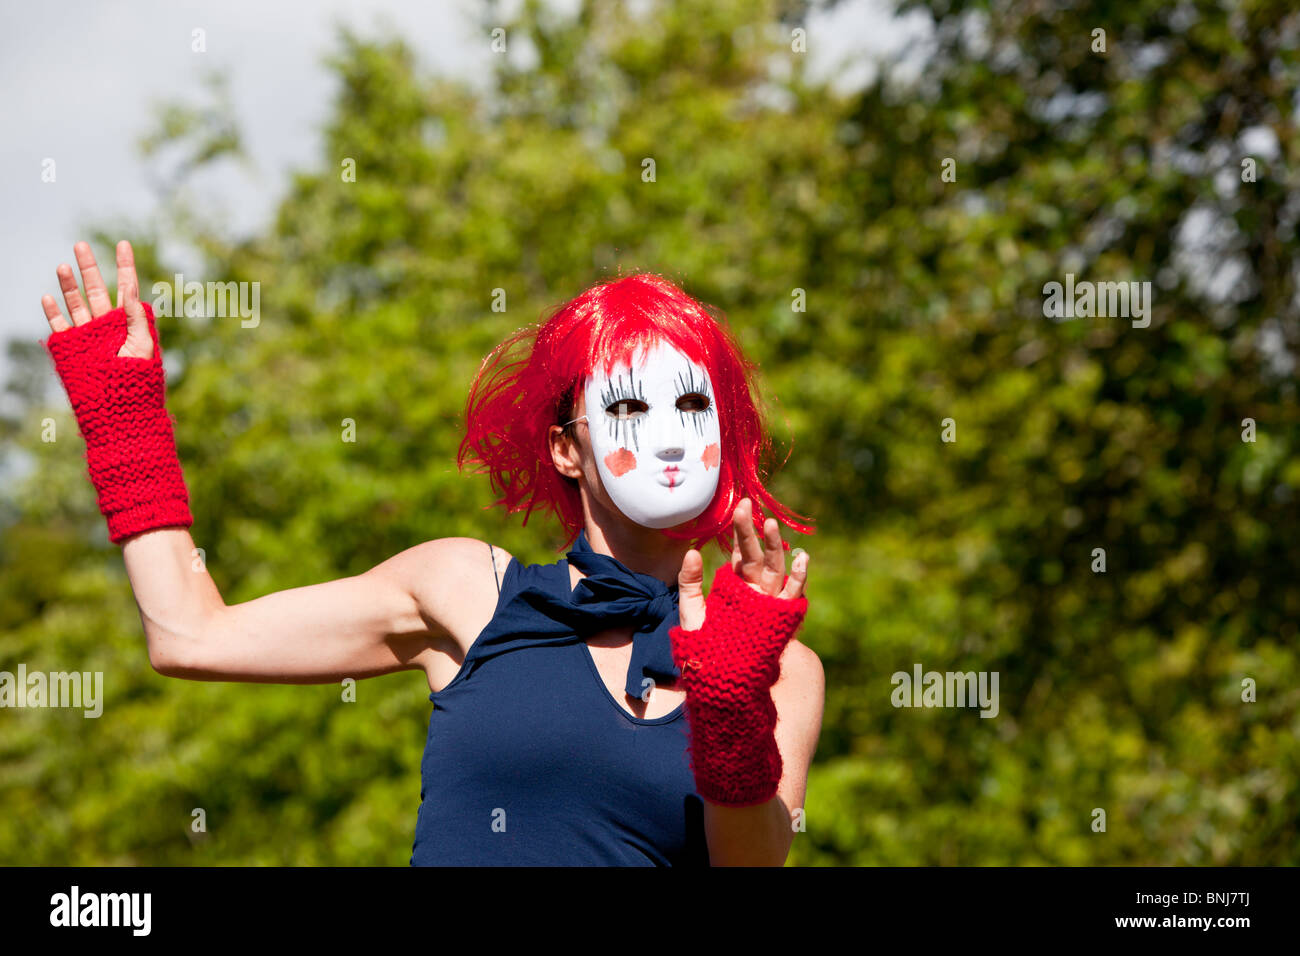 A female dancer / mime artist at a summer music festival - Stock Image